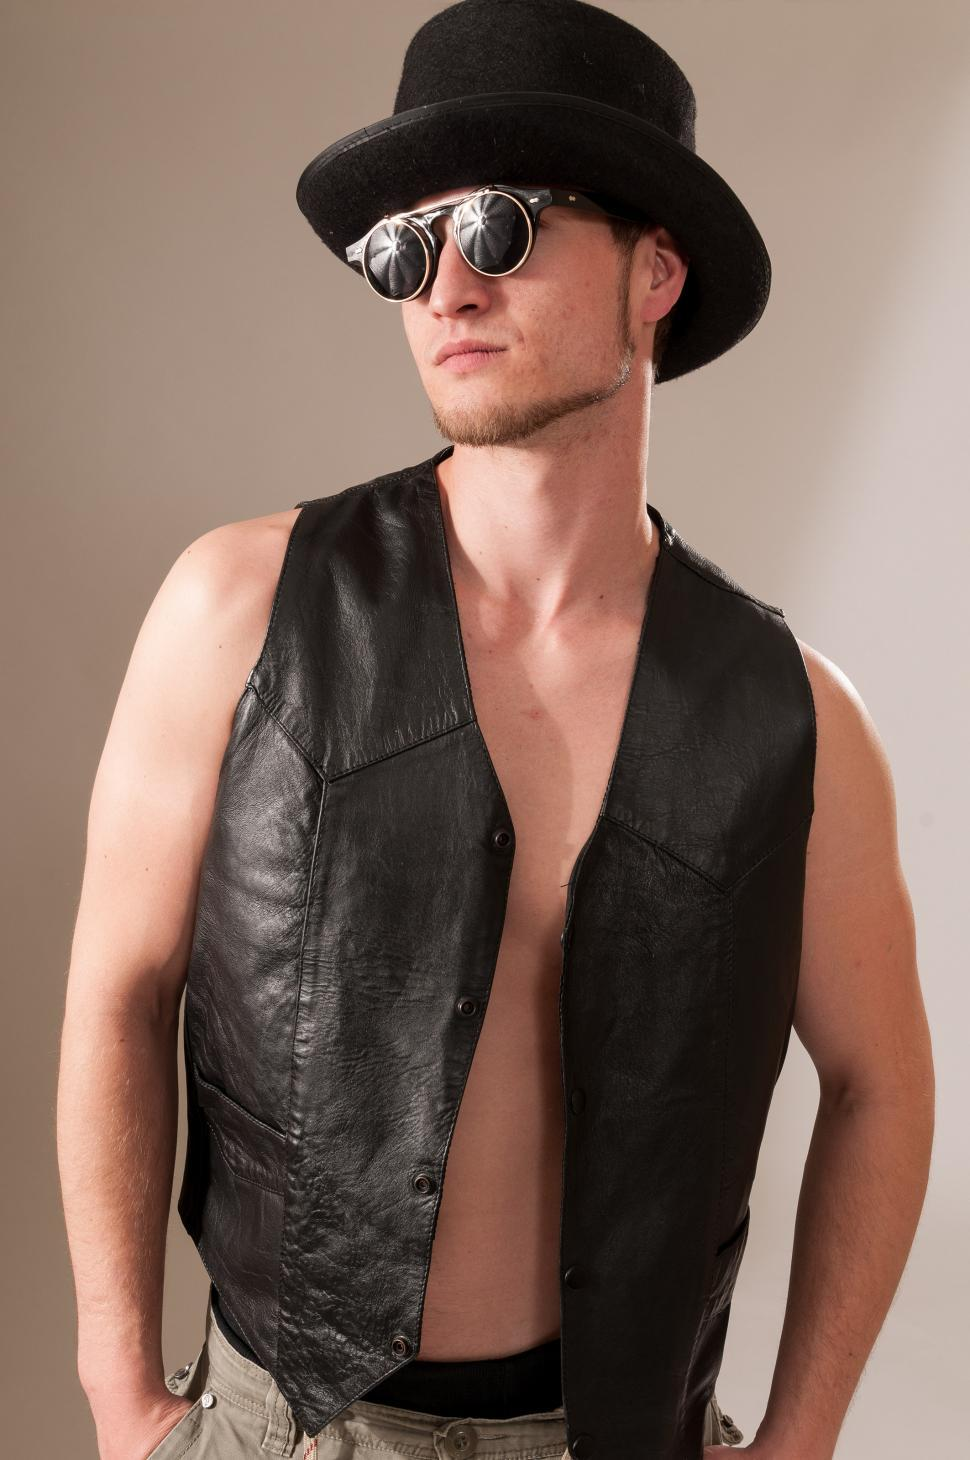 Download Free Stock HD Photo of Cool guy in a vest and top hat Online